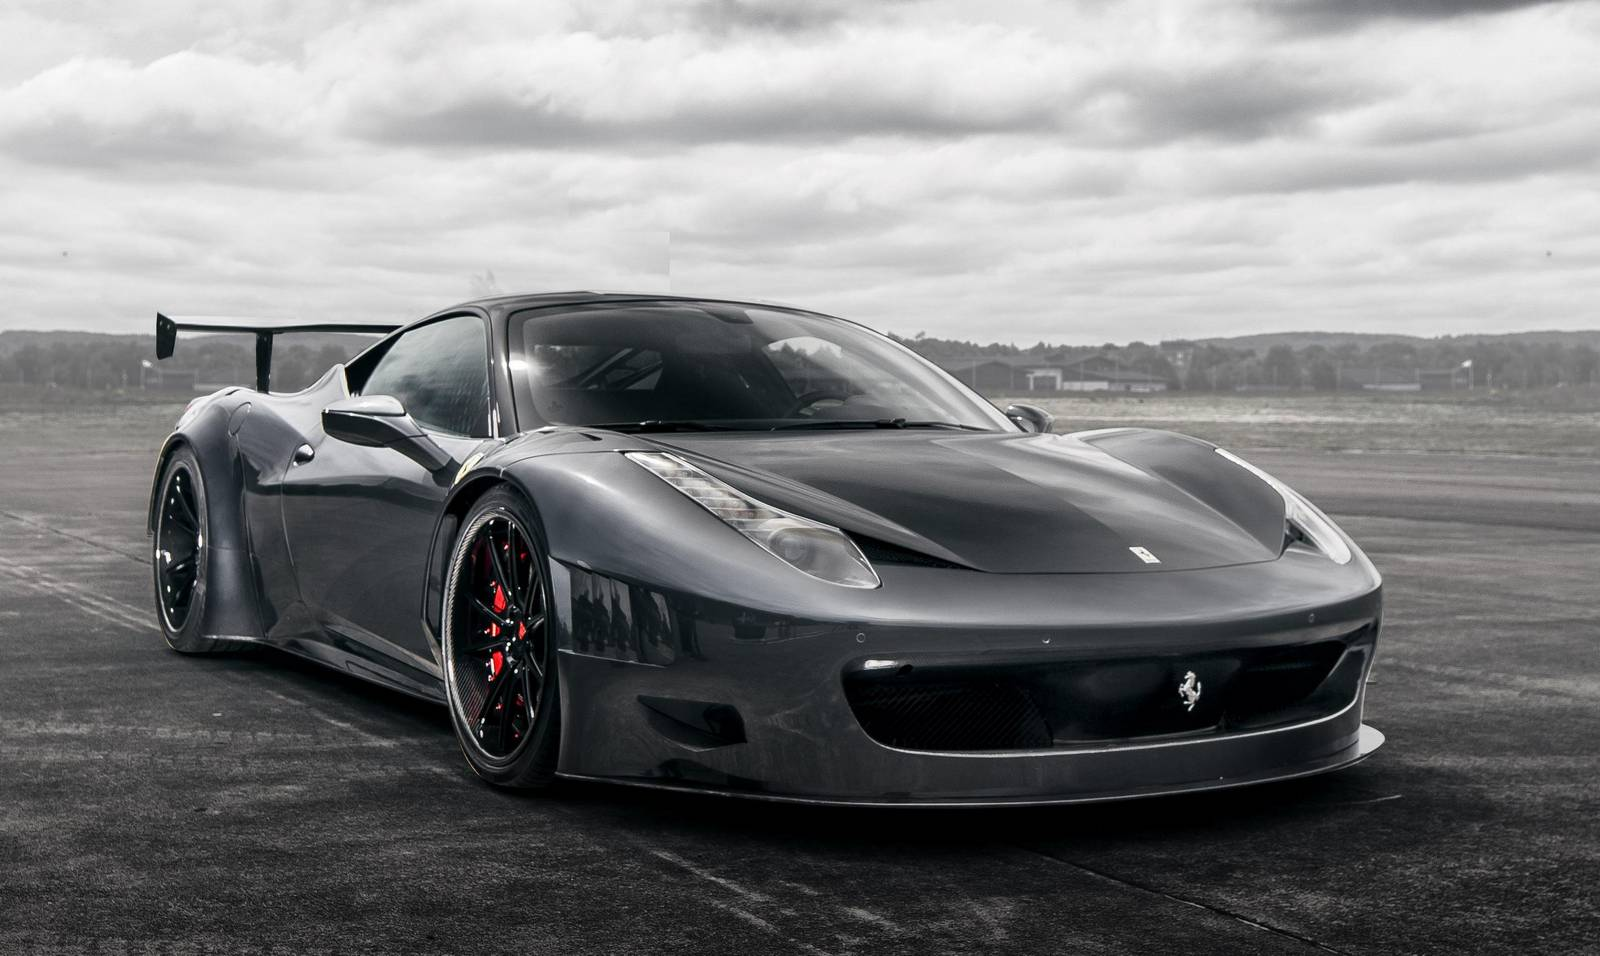 official vad ferrari 458 curseive gt3 gtspirit. Black Bedroom Furniture Sets. Home Design Ideas